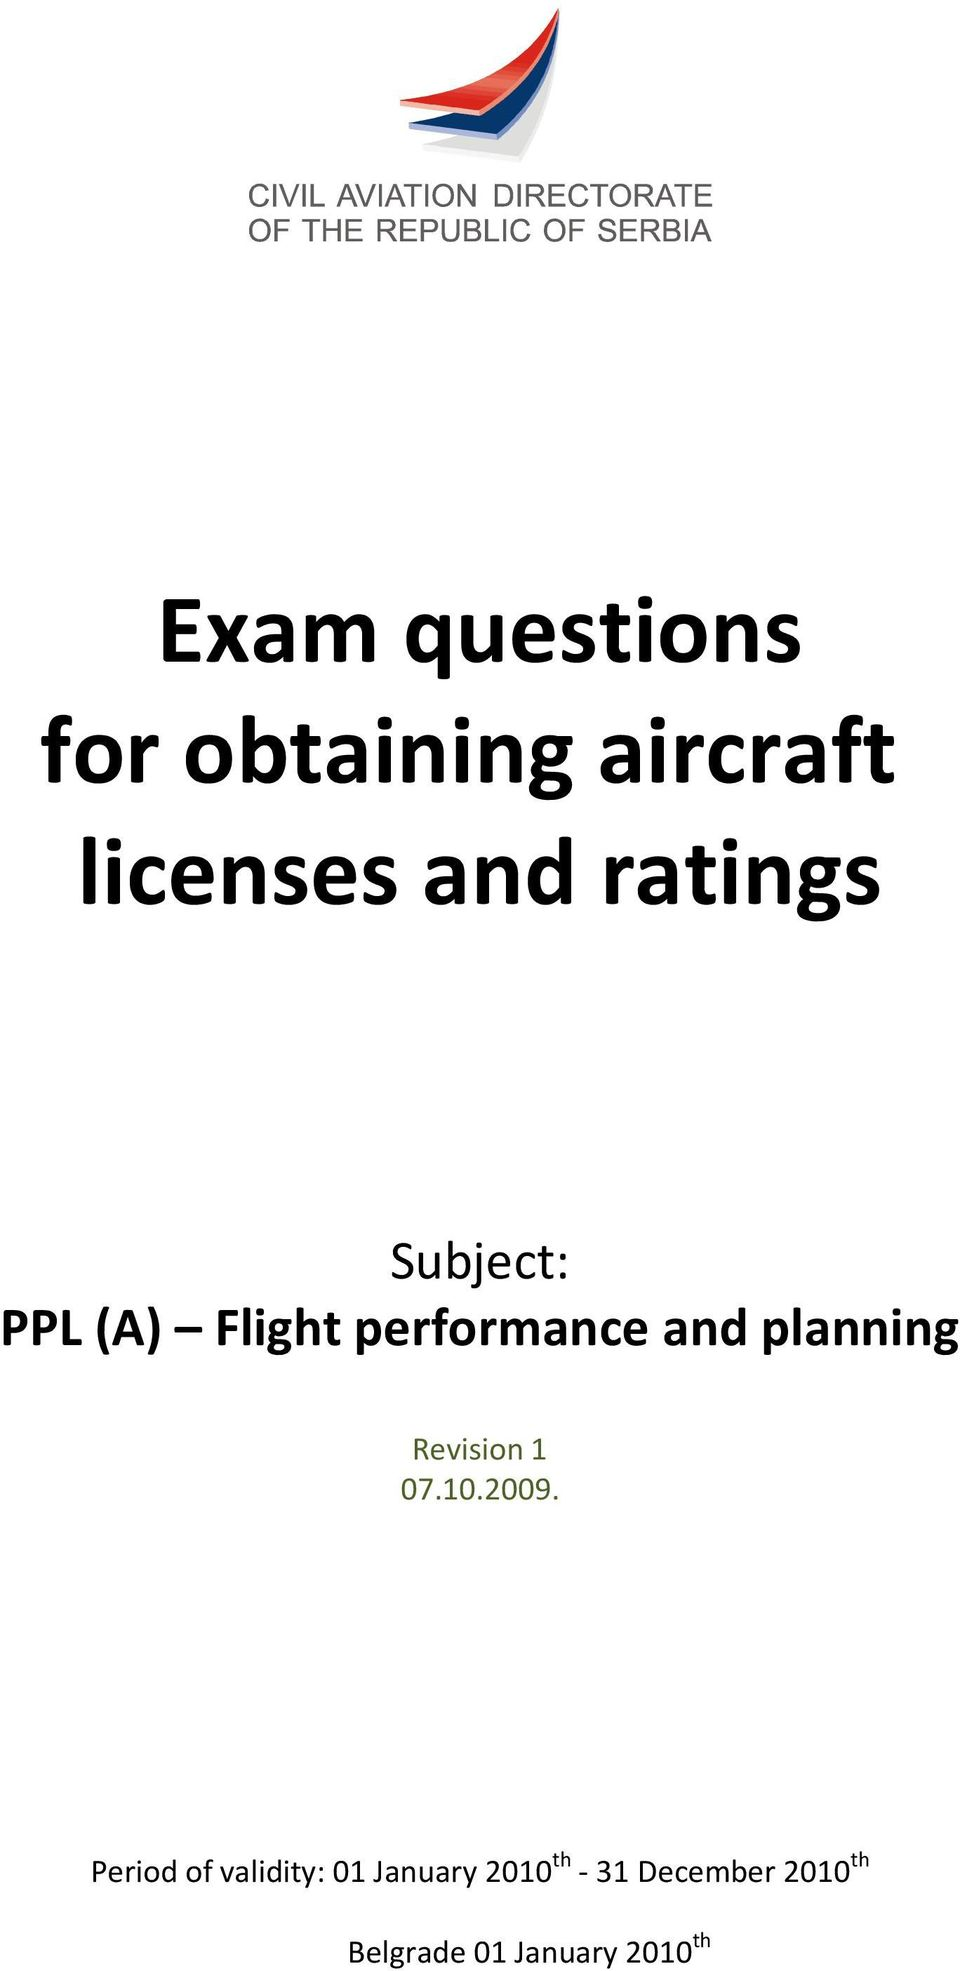 Exam questions for obtaining aircraft licenses and ratings - PDF